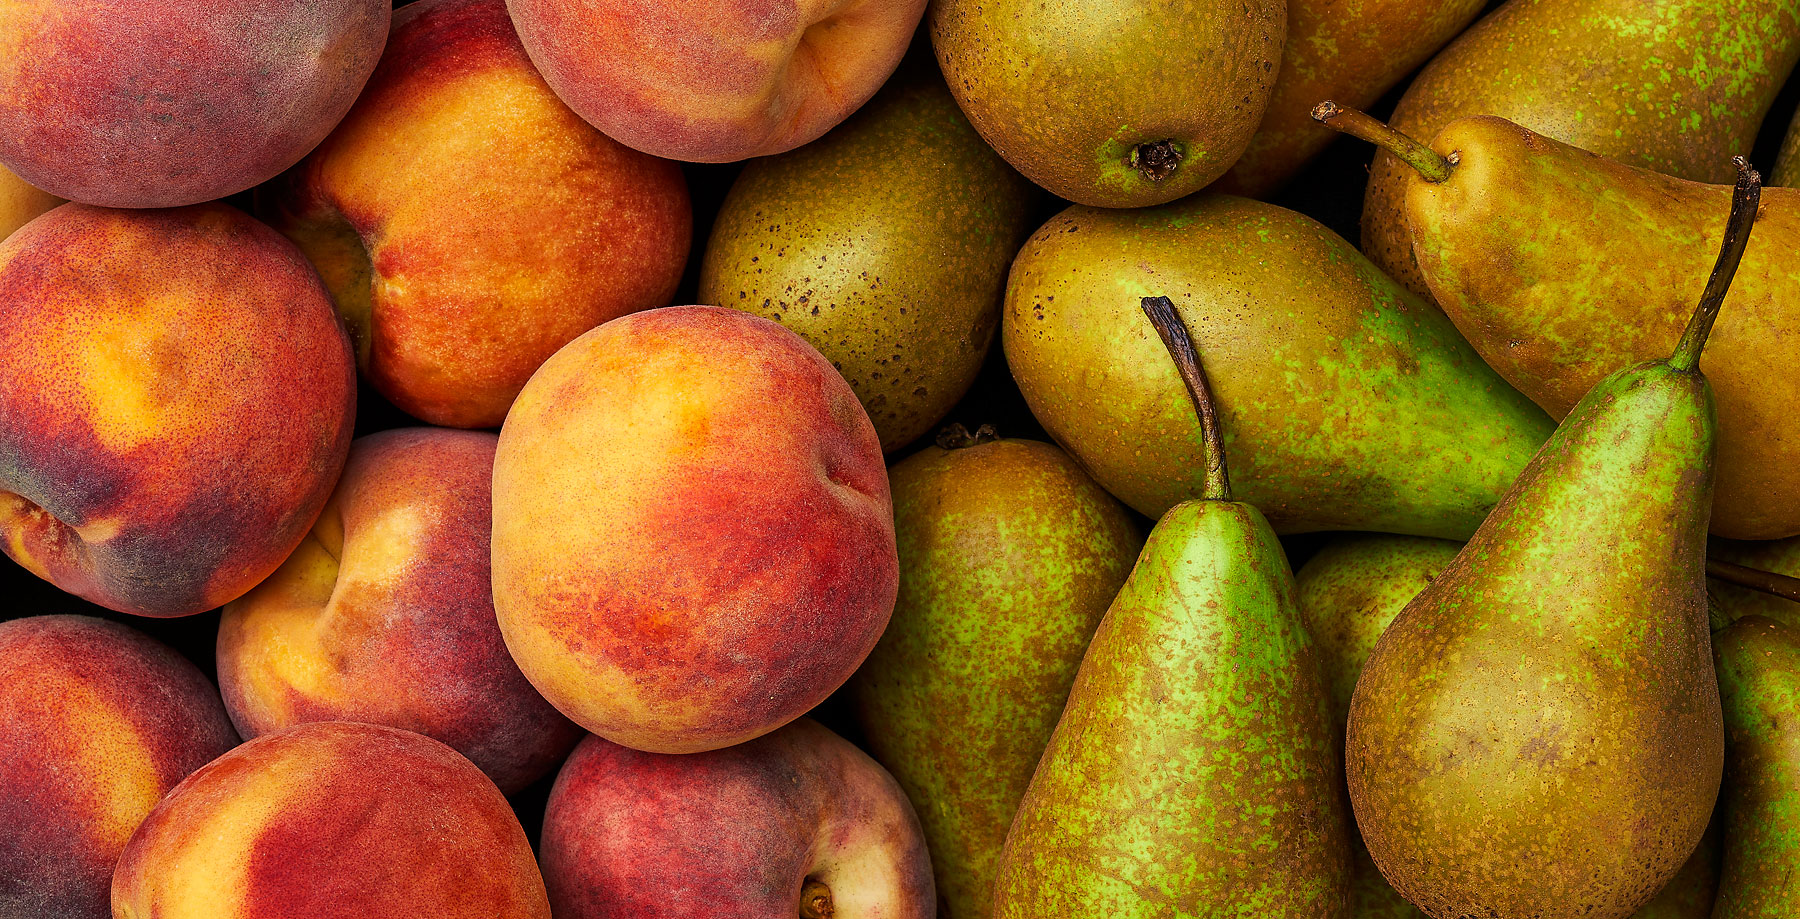 Peaches and pears